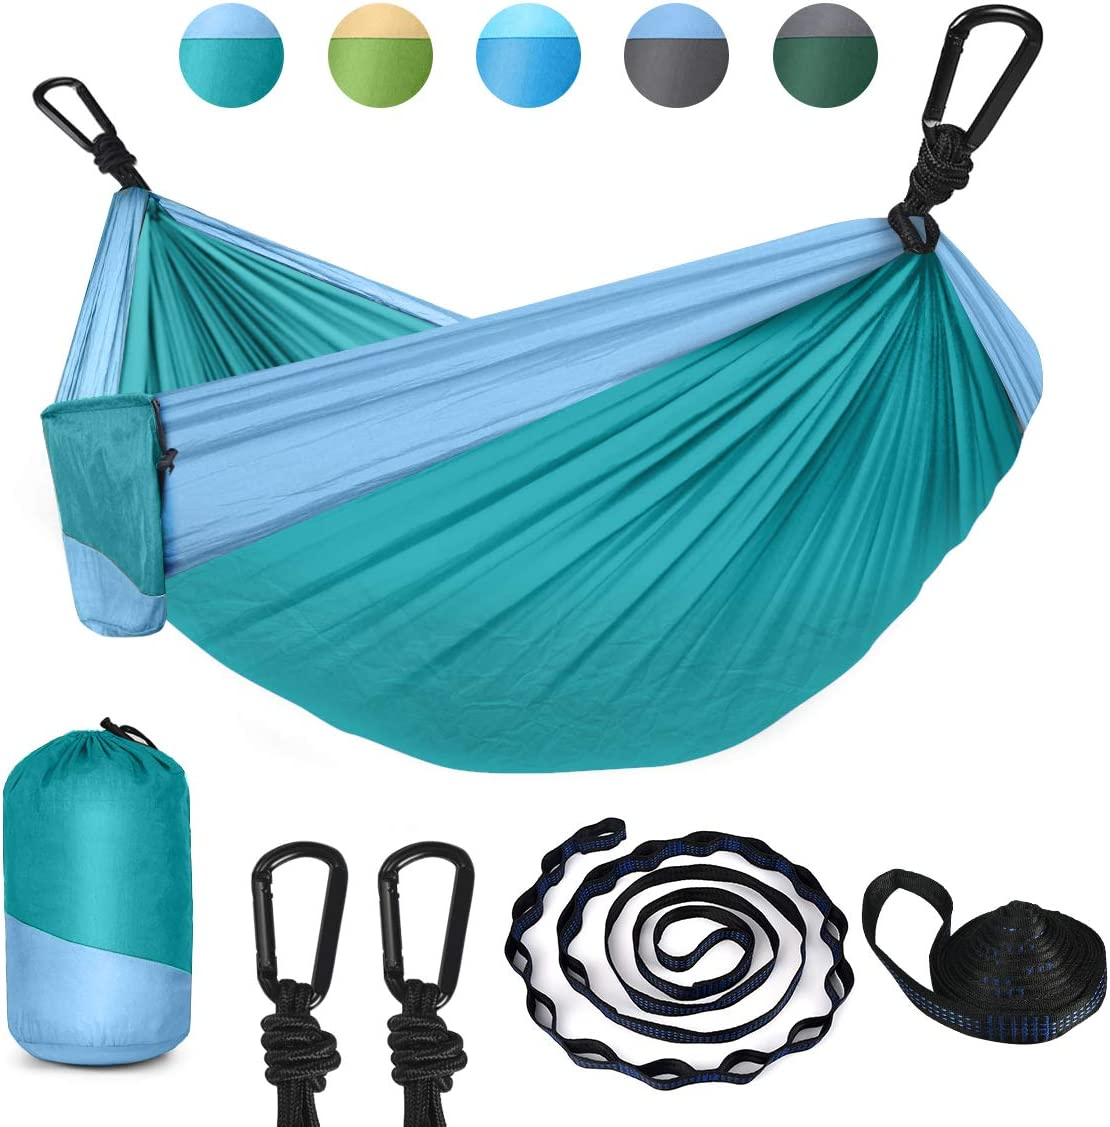 HULOSAN Camping Hammock, Double Single Hammock Portable Outdoor Hammock Nylon Parachute with 2 Tree Straps, 2 Carabiners for Camping,Travel,Beach,Backyard,Patio,Hiking